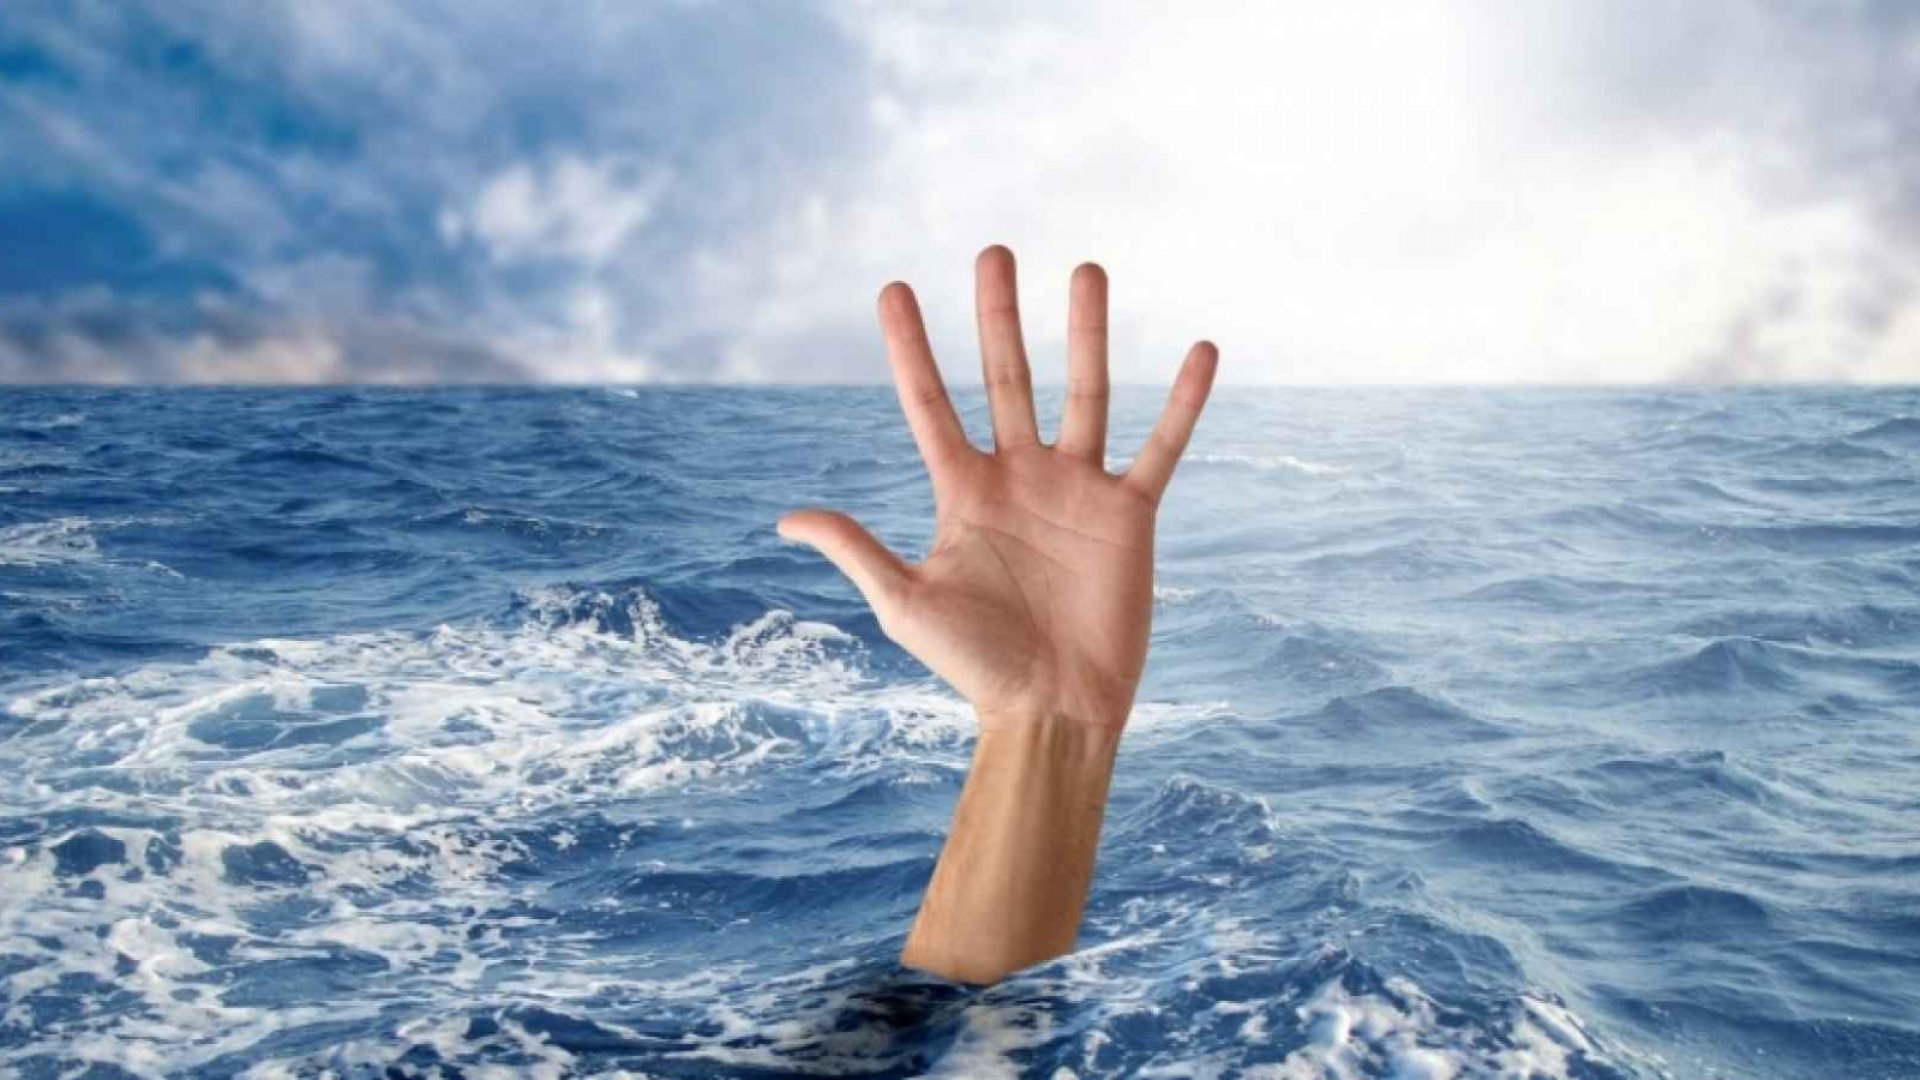 Still Drowning in Big Data, and Starving for Insights